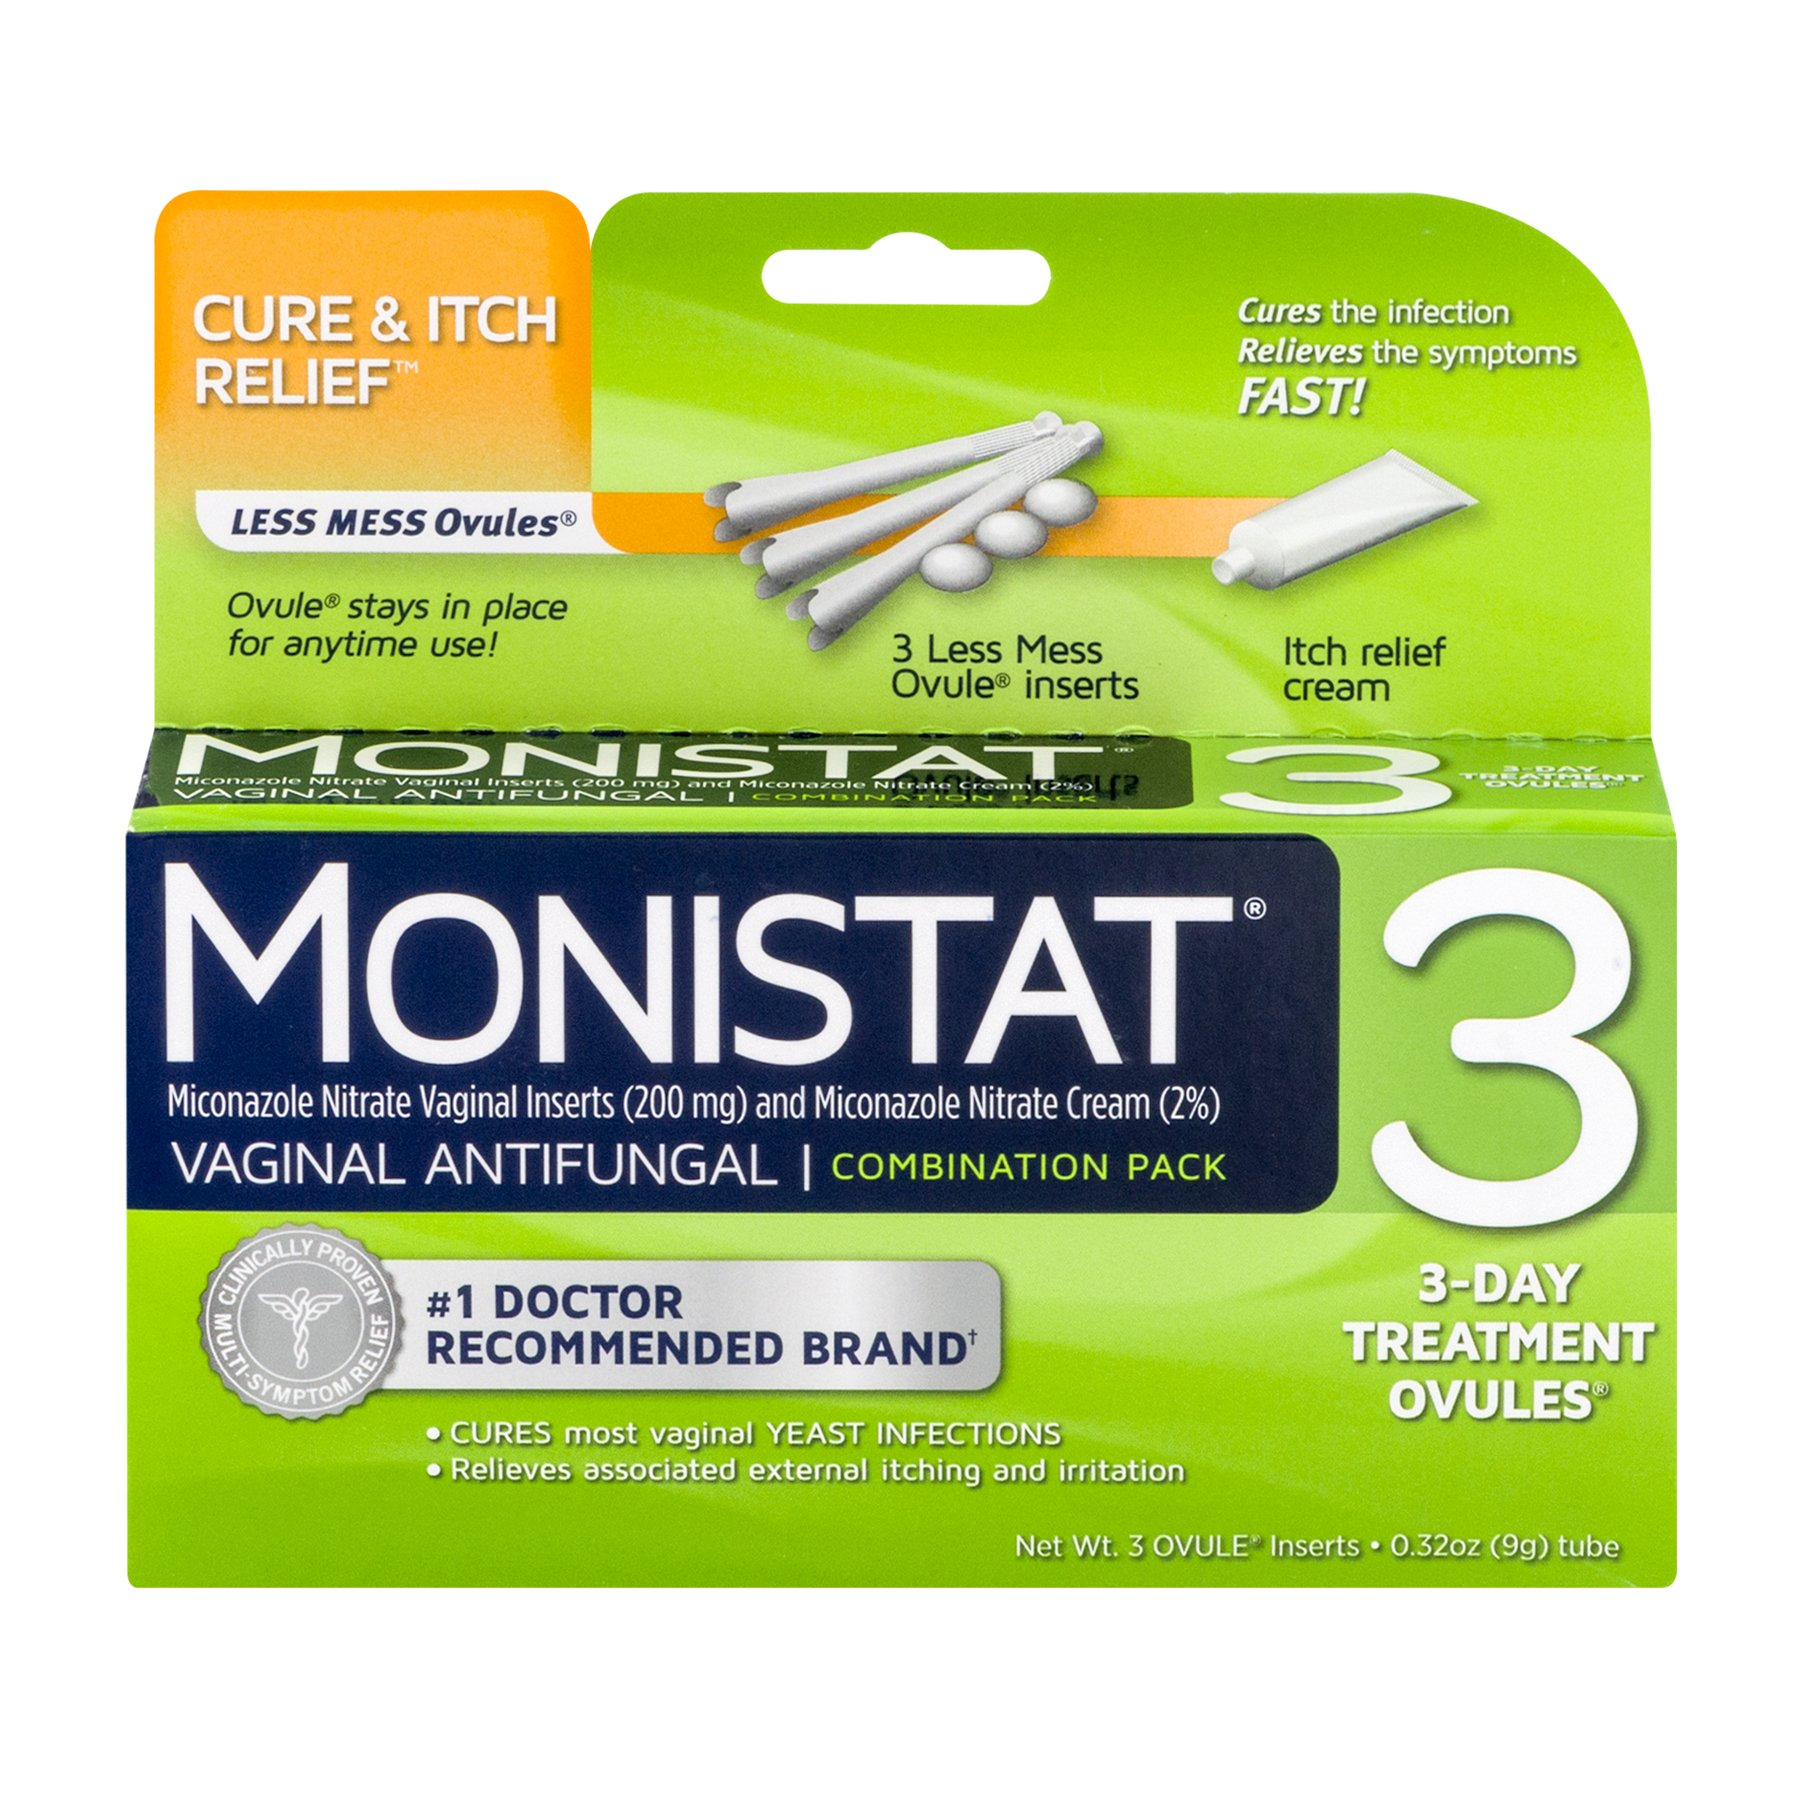 Monistat 3 Vaginal Antifungal Combination Pack - 3 Each, Pack of 2